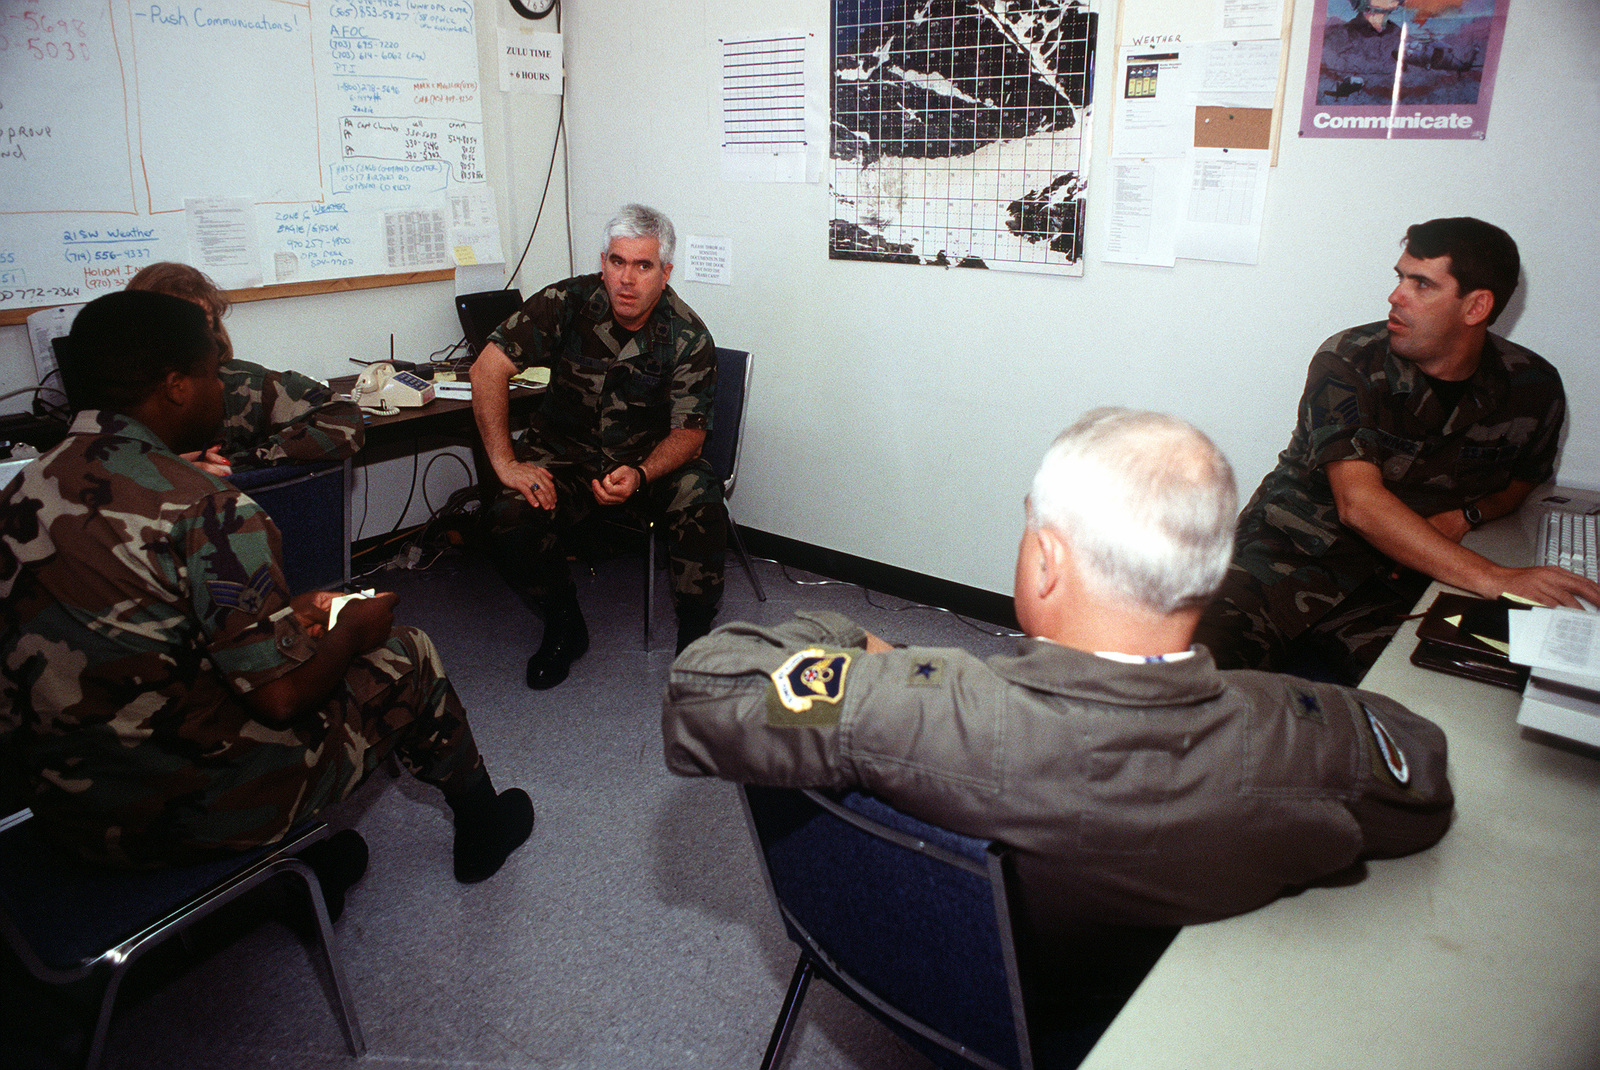 LTCOL Mike Selva (center, left), on-scene commander, briefs BGEN Donald A. Streater (foreground, right), commander of the A-10 recovery operation, on the pararescuemen's progress at the crash site near Gold Dust Peak. LTCOL Selva is assigned to Peterson Air Force Base, Colorado and BGEN Streater is assigned 8th Air Force, Barksdale Air Force Base, Louisiana